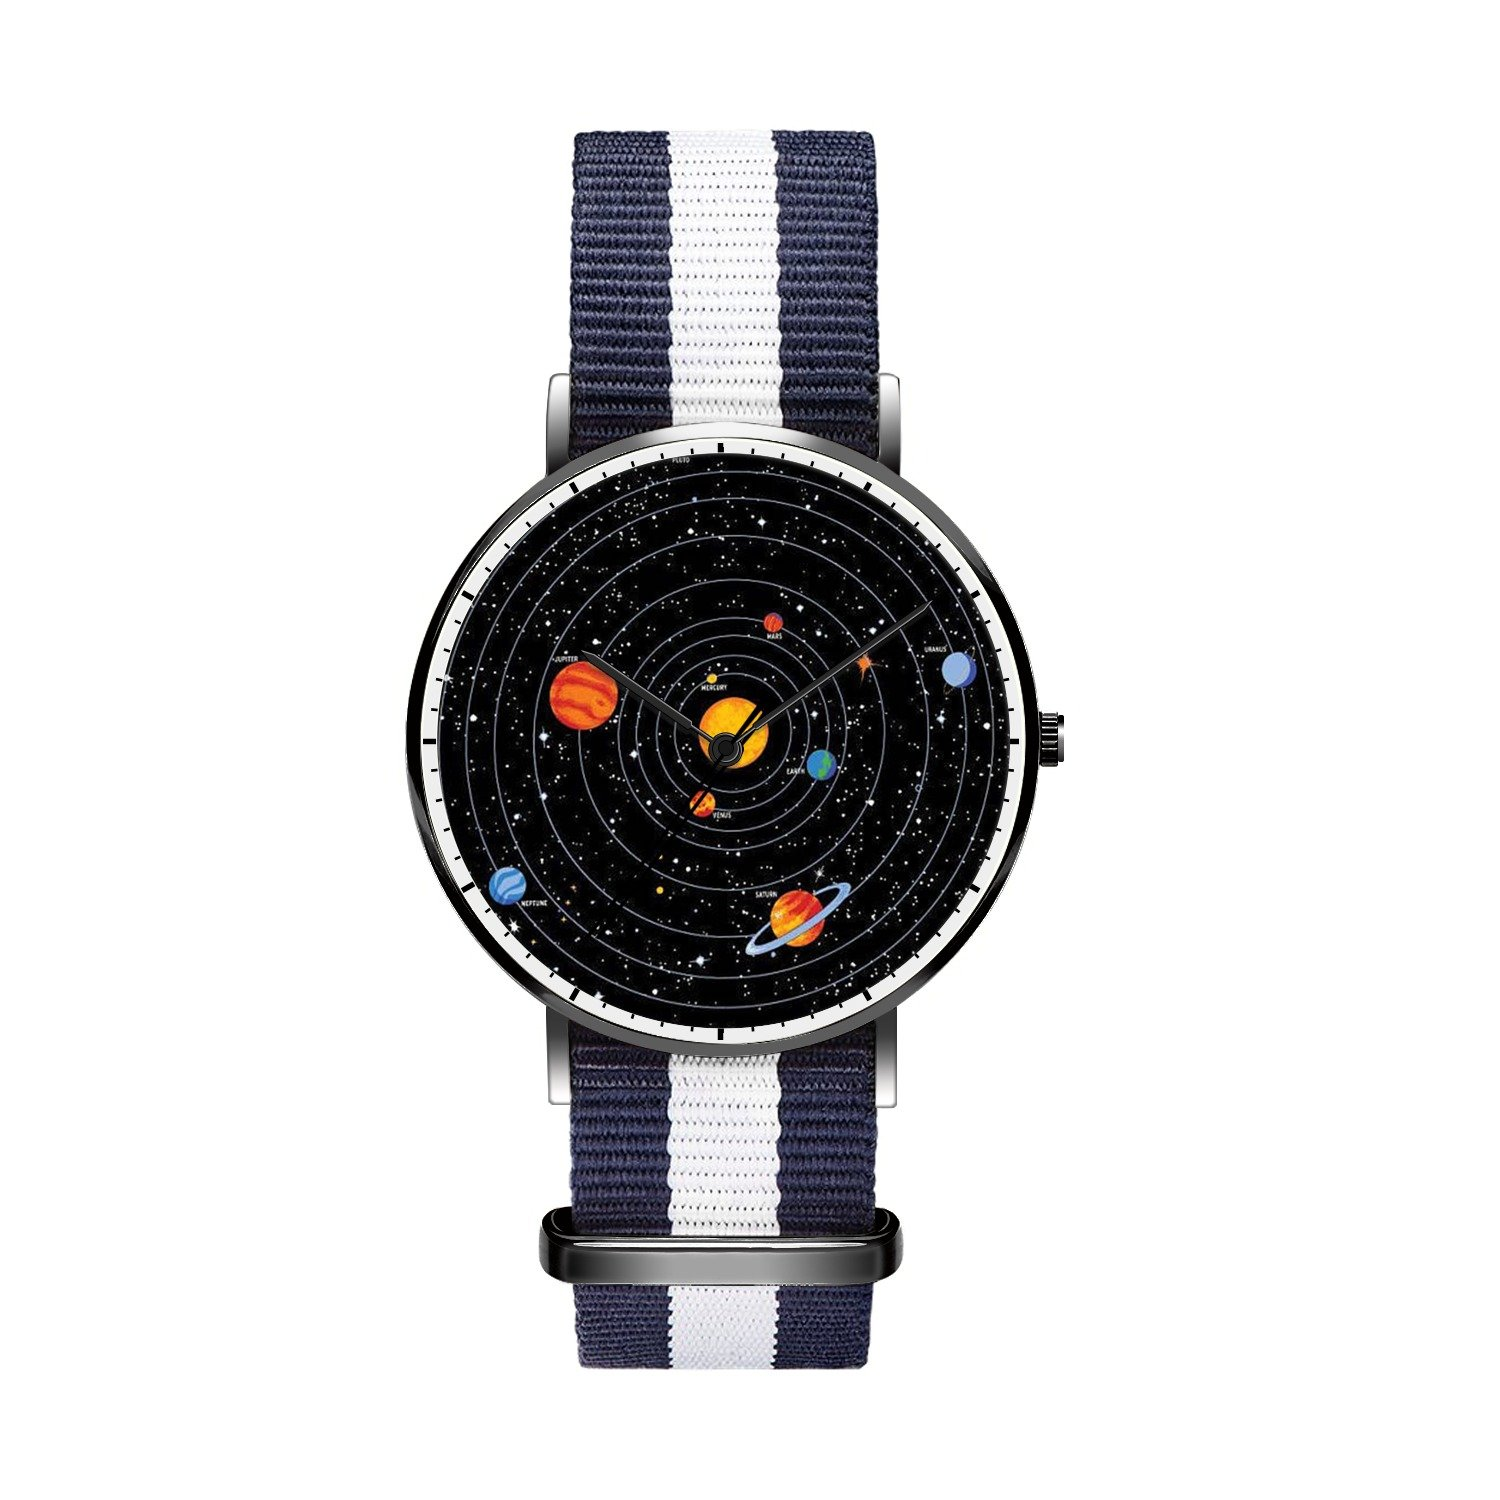 Mens watches, Youth Boys Black Japanese Quartz With Nylon Strap Analog Wrist Watches PracticalWaterproof and Minimalism Design,Idea Gift for Lover.- Solar System